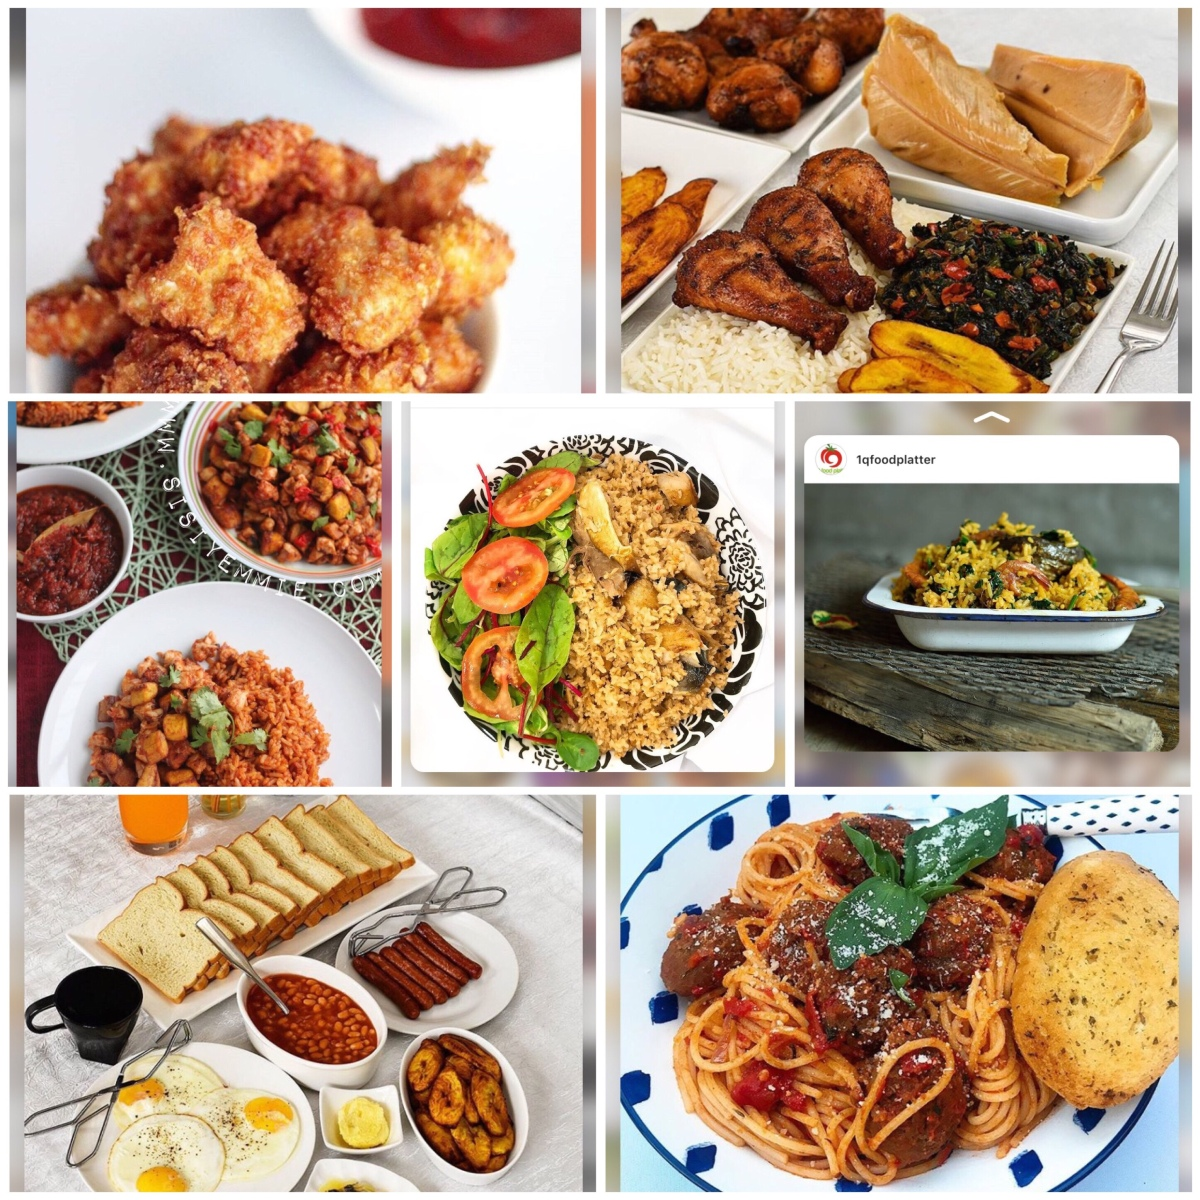 Foodlovin' : 6 Nigerian Food Blogs I Live For!